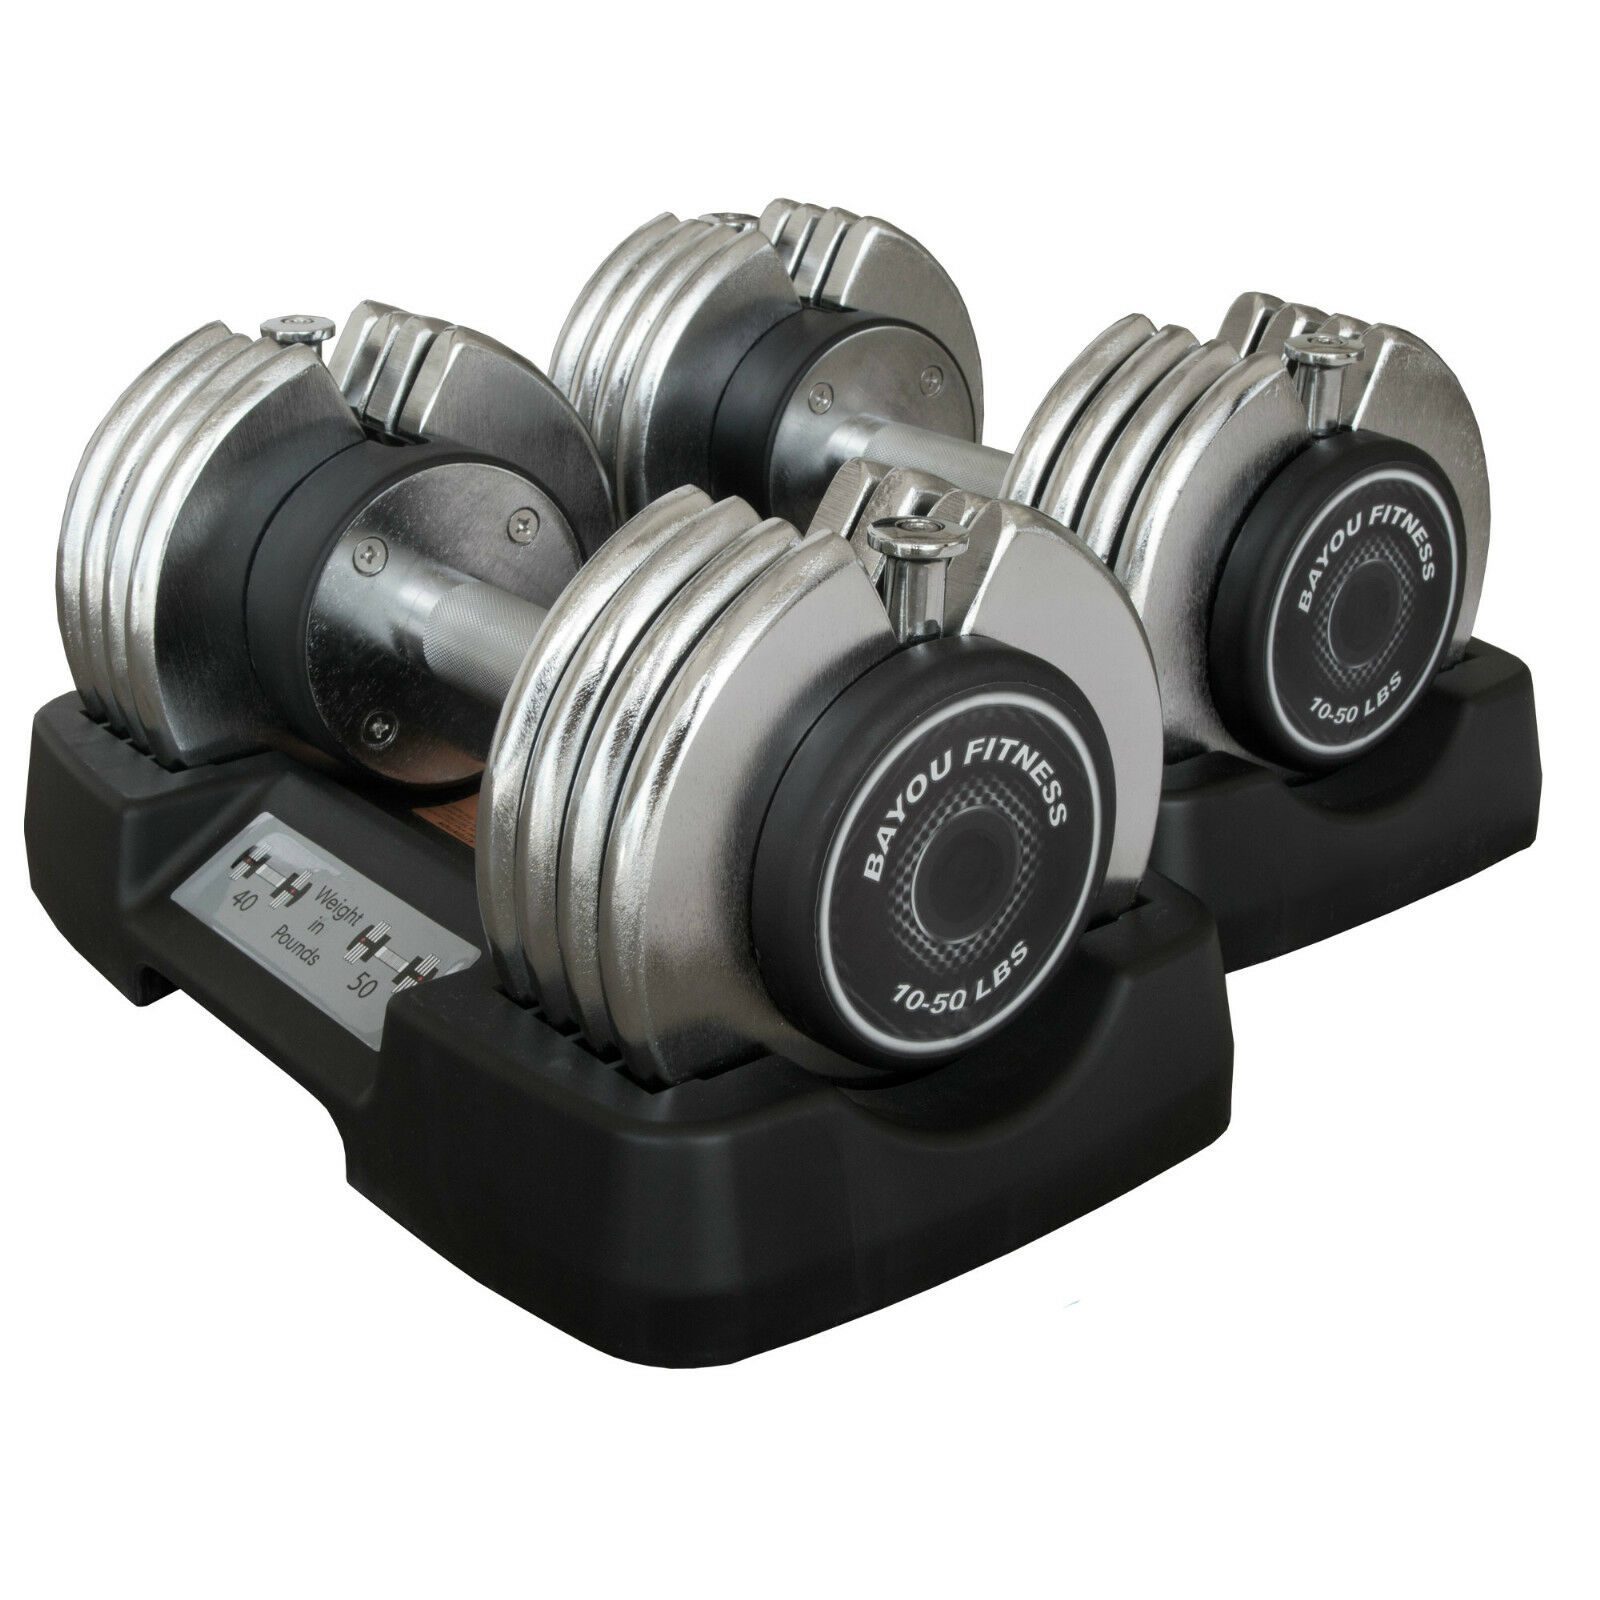 Bayou Fitness 2 (Two) 50lb Adjustable Weight Dumbbells BF-0250